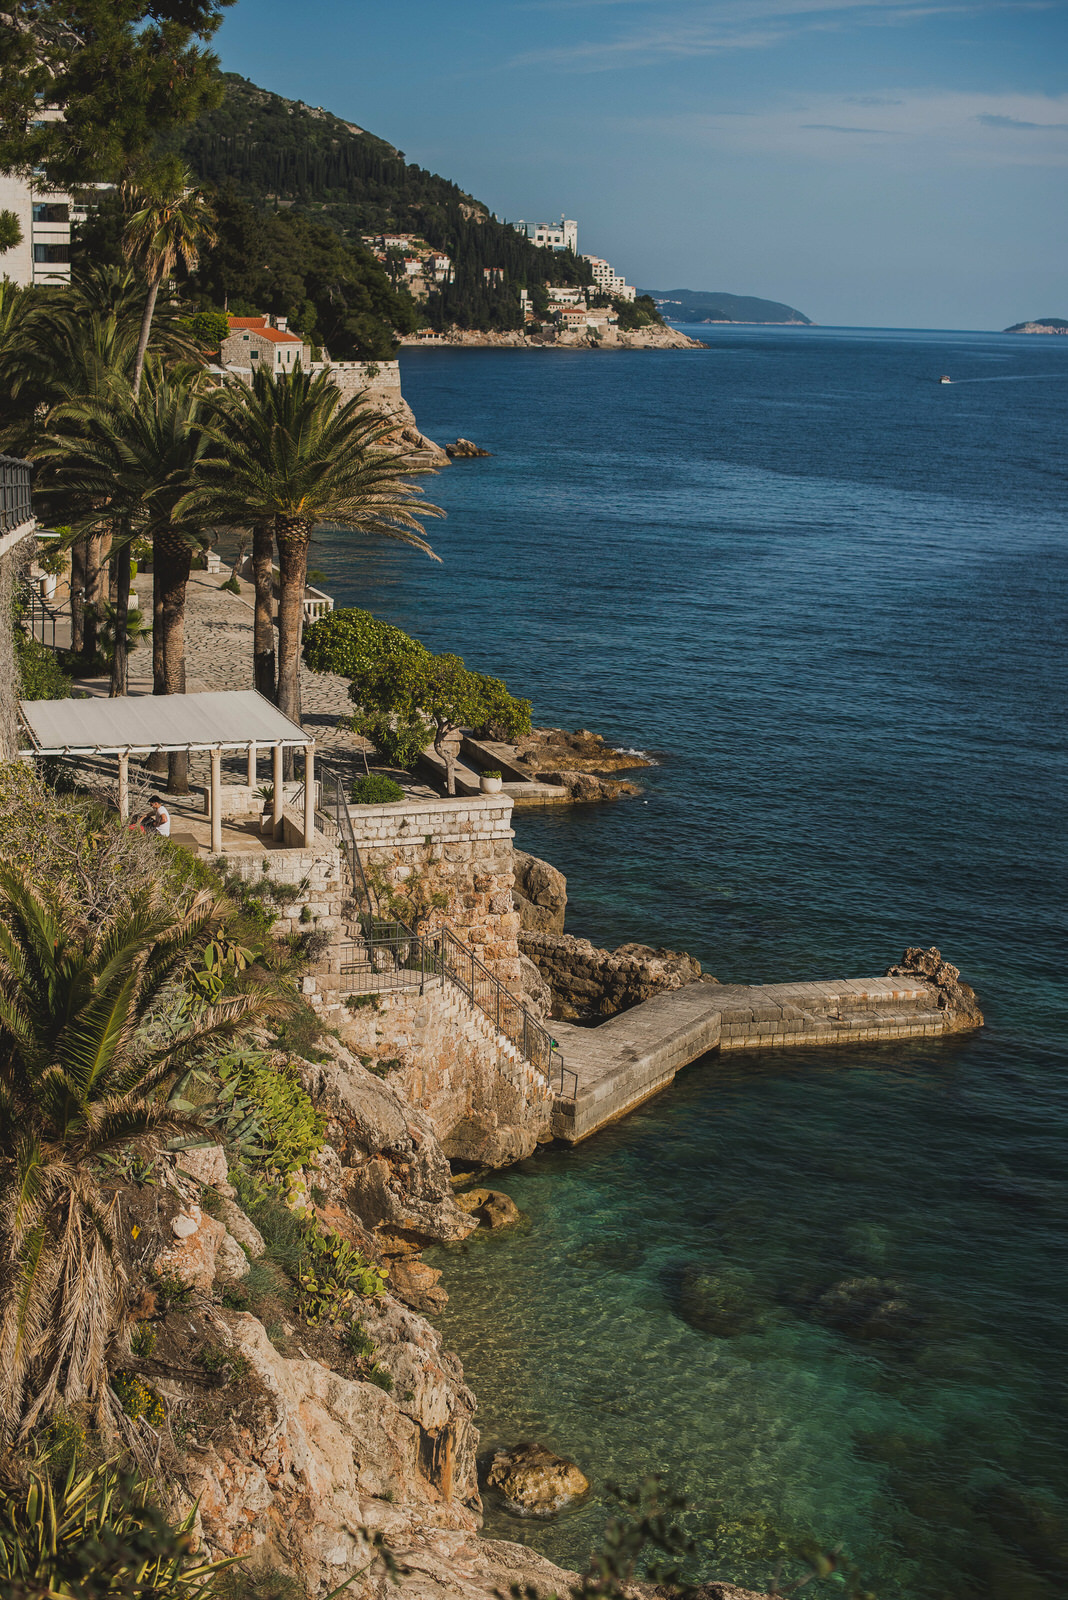 The palm terrace at Hilton hotel in Dubrovnik with sea view